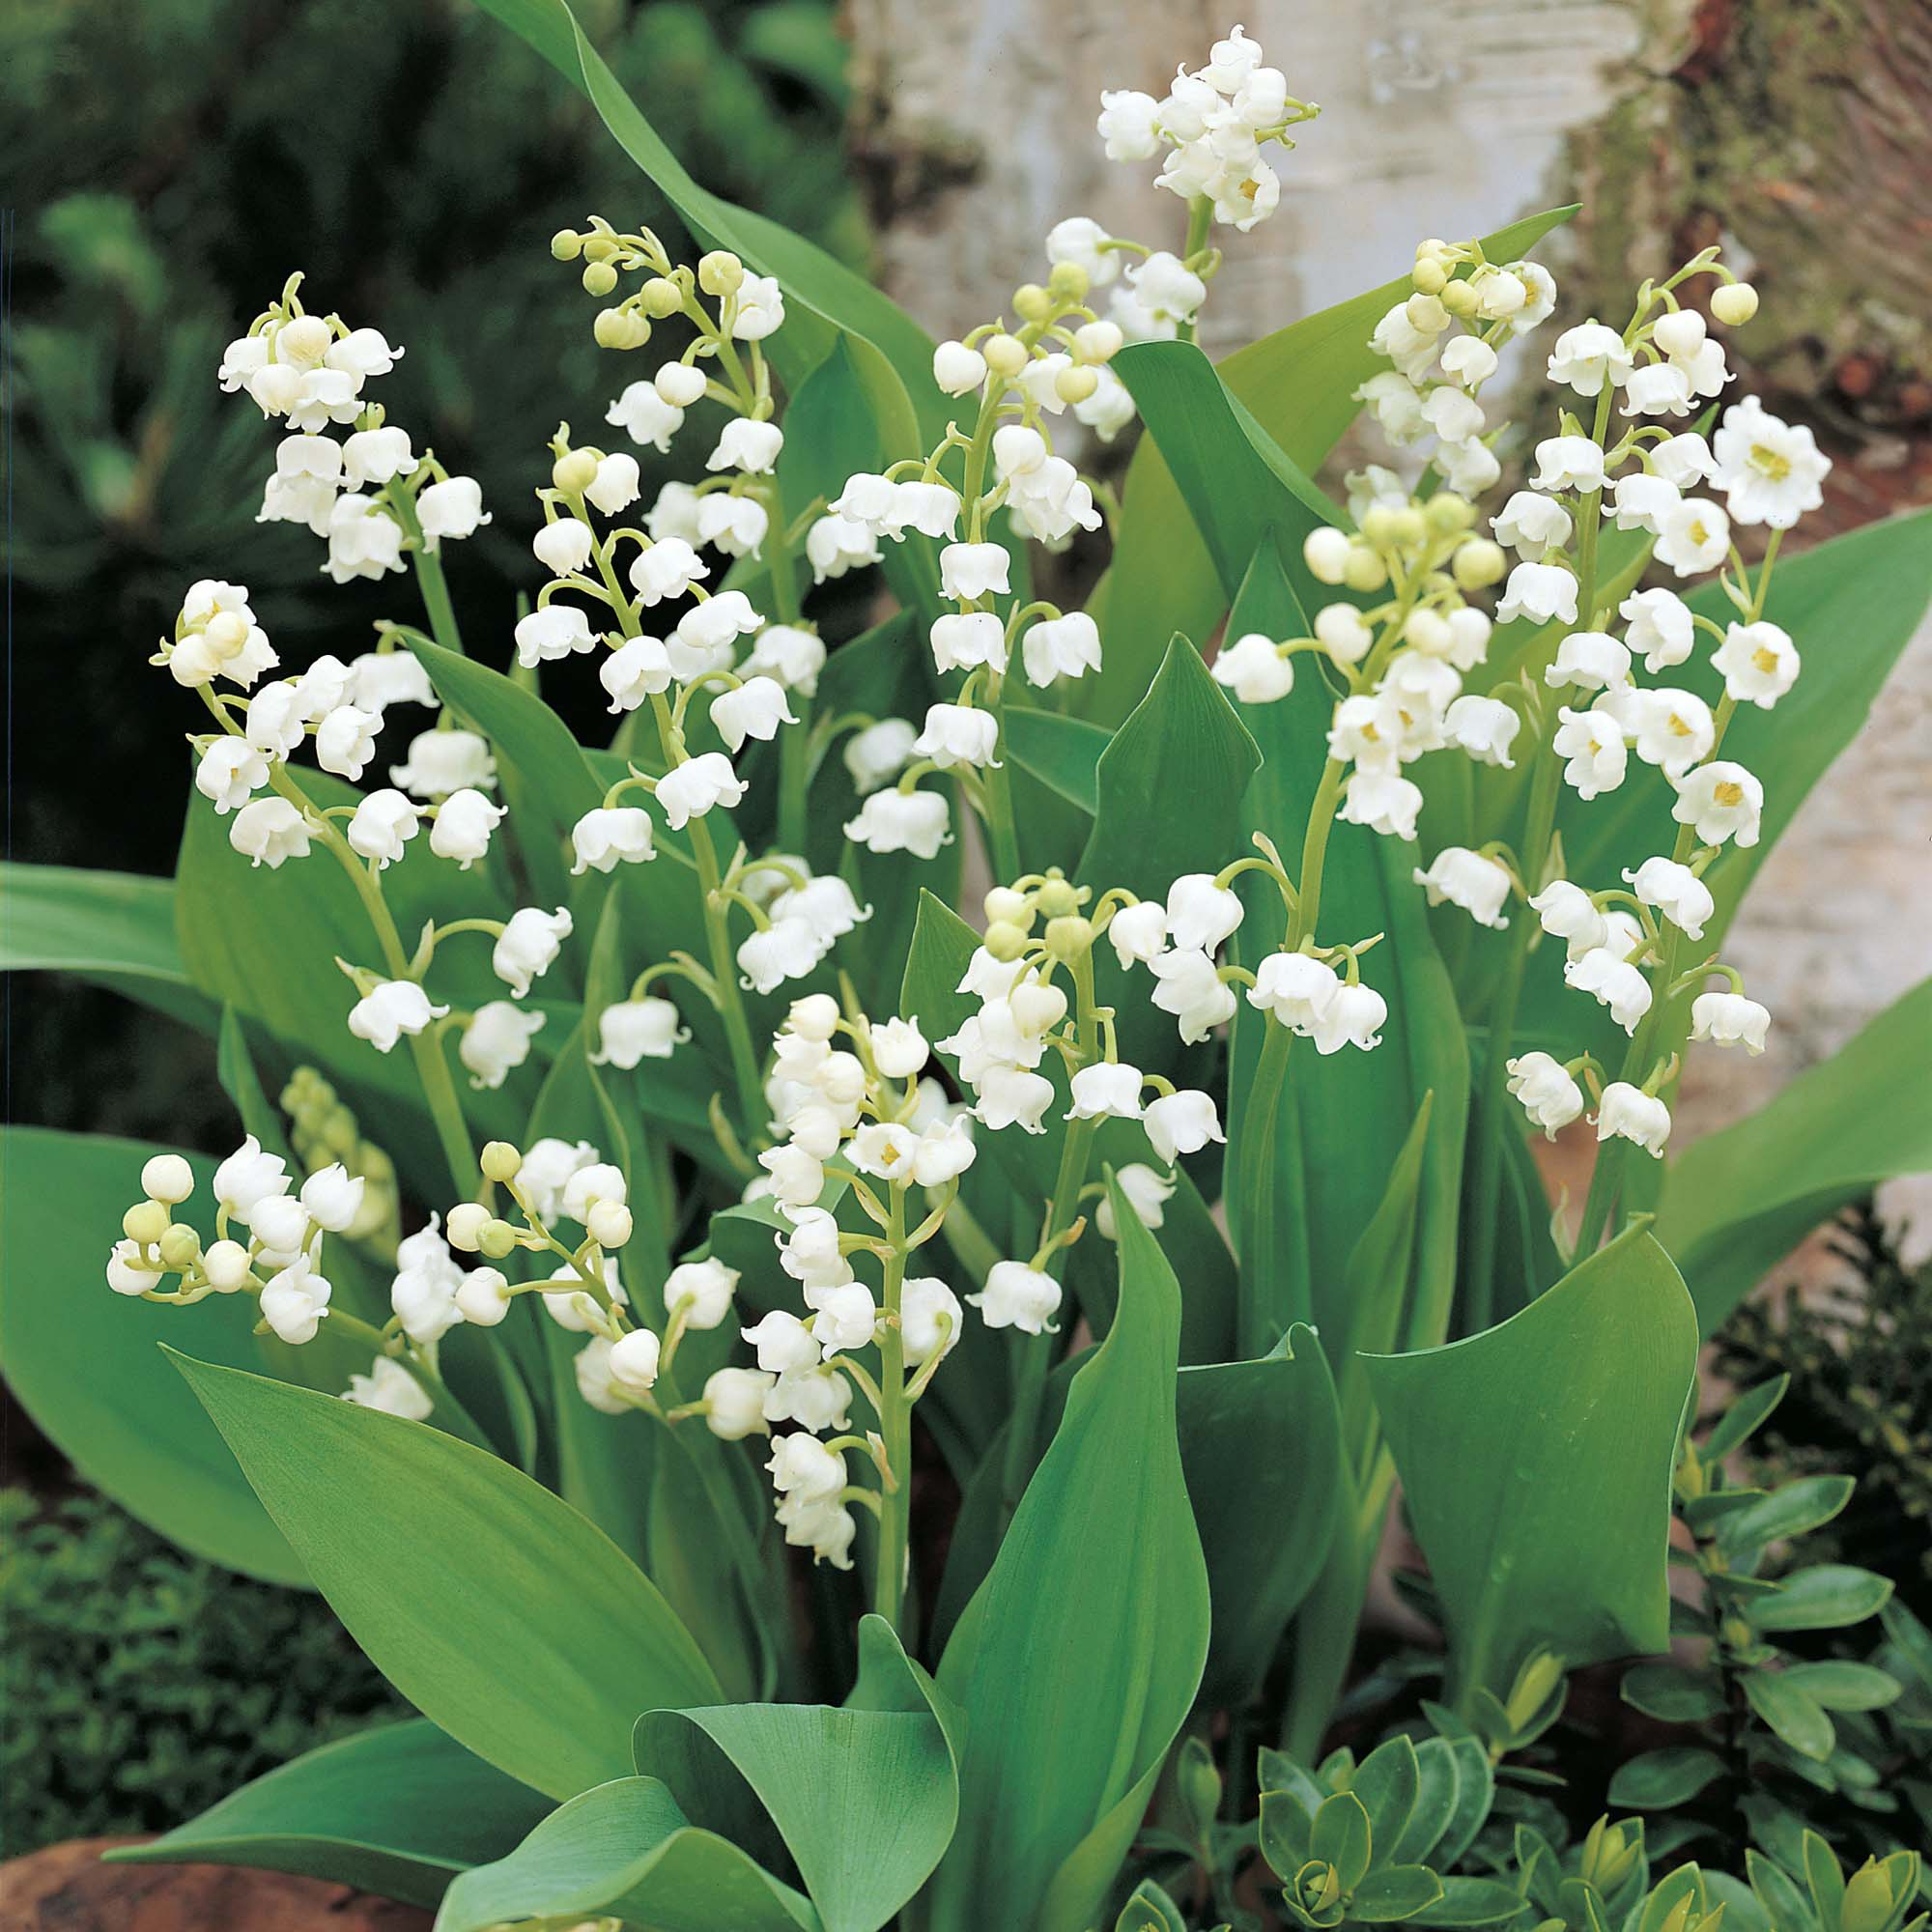 Lily Of The Valley in Spring 636.7 Kb